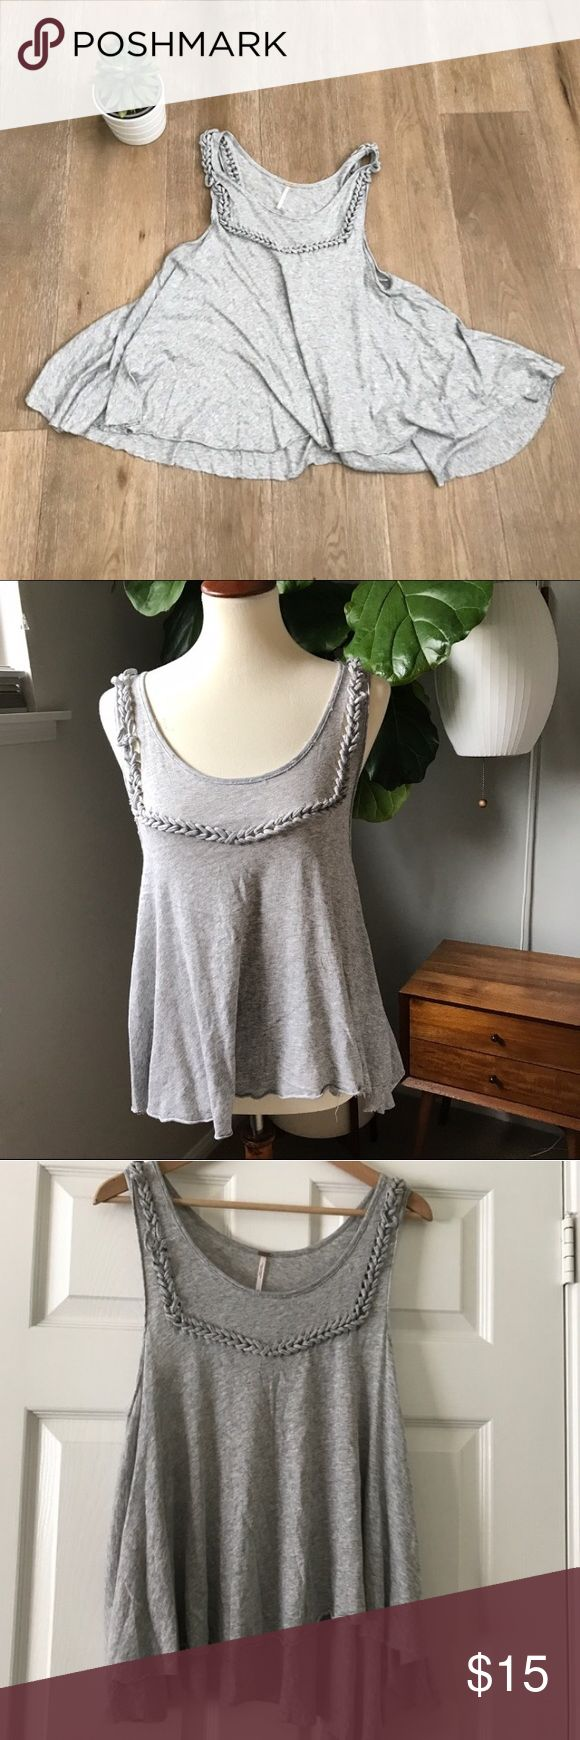 """Free people Flowy tank Size M Free people Flowy tank Size M. Rope detail. Thin and light weight cotton. Super cute with skinny jeans👖.  Ropes are a little pulled and threads lose in some parts but still adorable!  🎈👍😉 Bust 20"""" Length 24"""". Great for upcoming festivals and Coachella!  🌵🌴. Bundle and save 🌸🎈🎈👍 Free People Tops Tank Tops"""